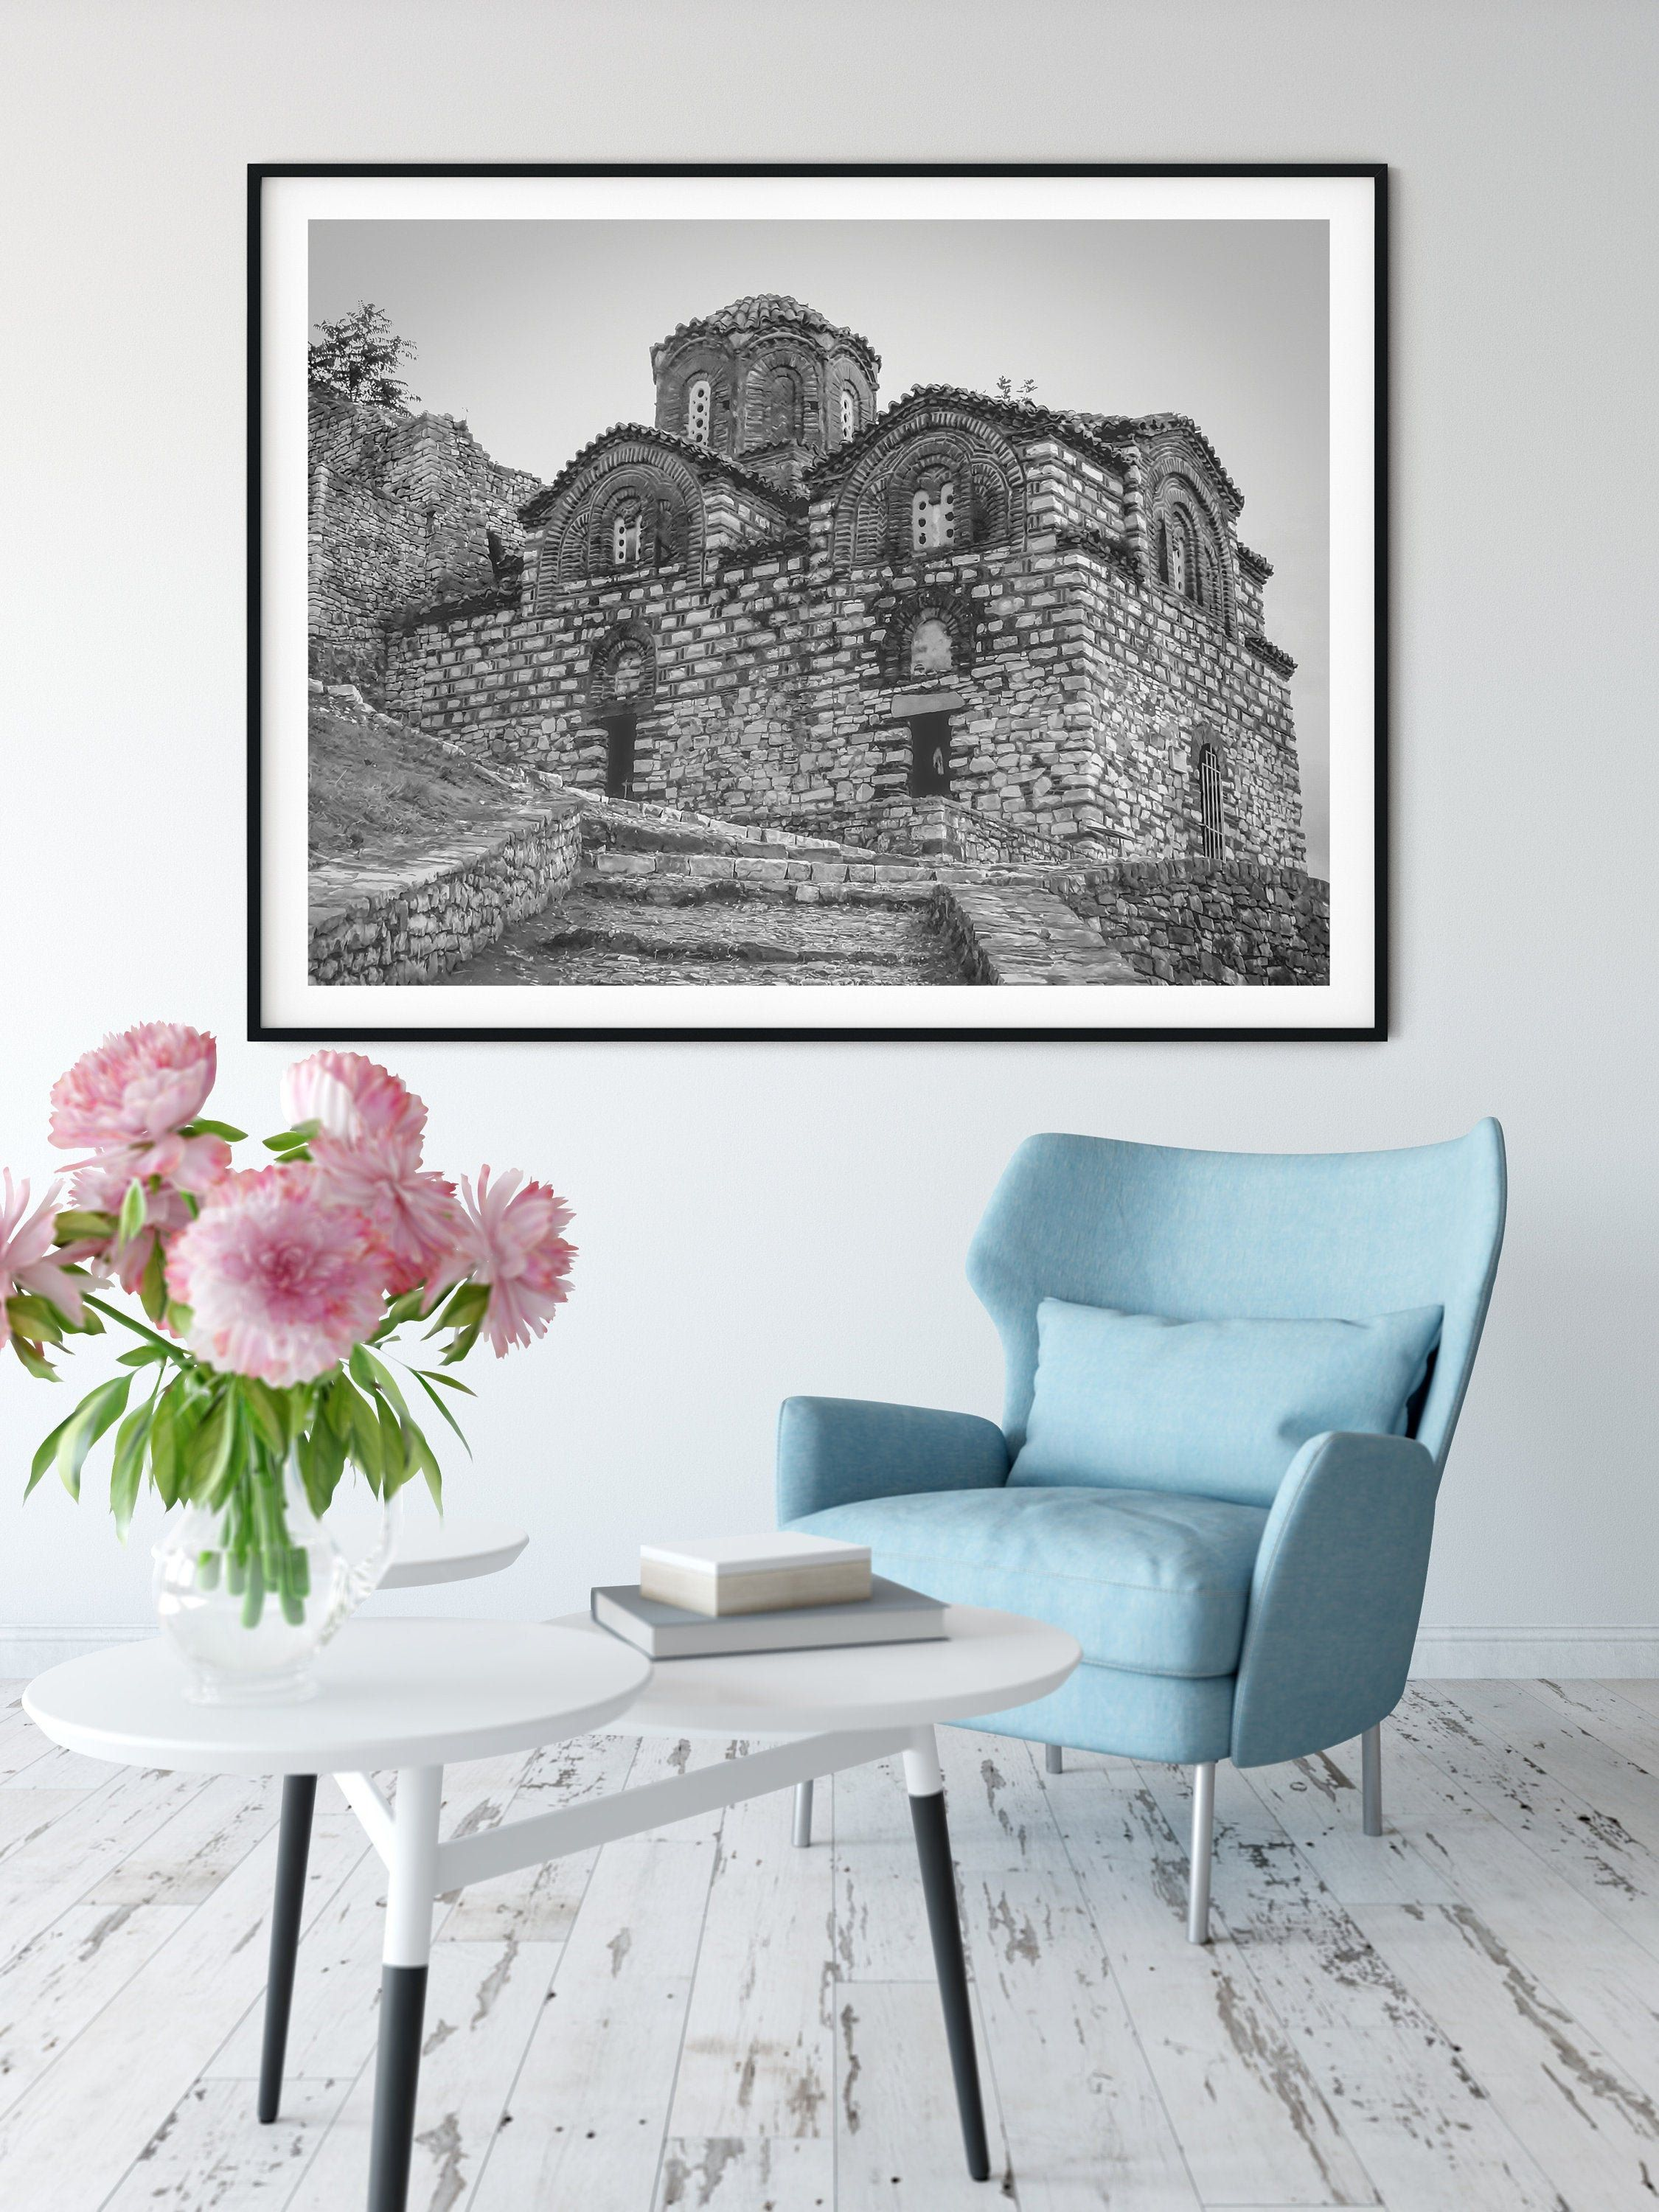 Albanian Architecture Print Black And White Wall Art Byzantine Church Travel Photography Home Wall Decorating By Katandkoutprintables On Etsy In 2021